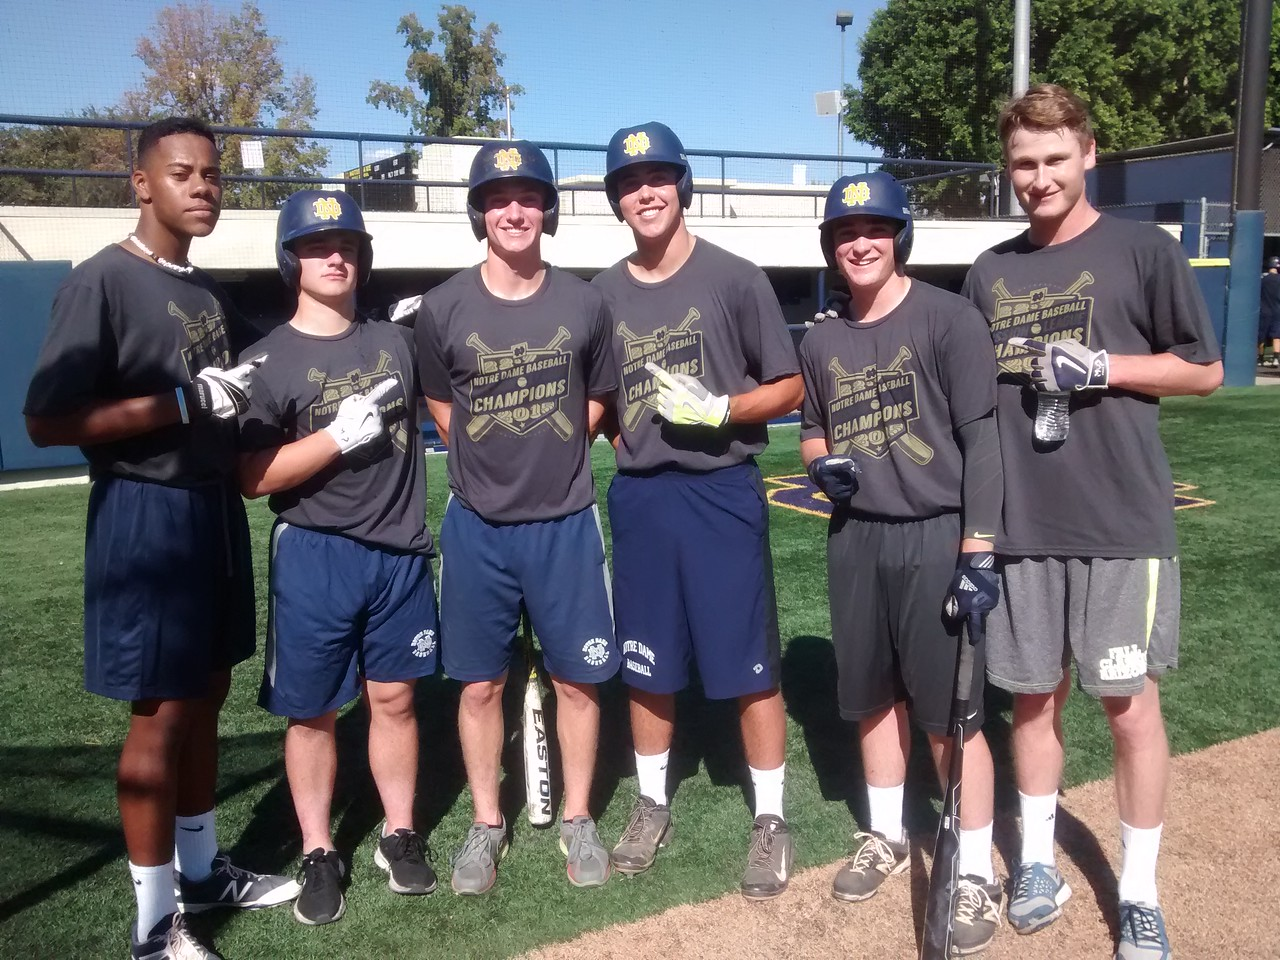 Some returning ND players sport their Mission League Champion T-shirts at baseball class in October 2015.